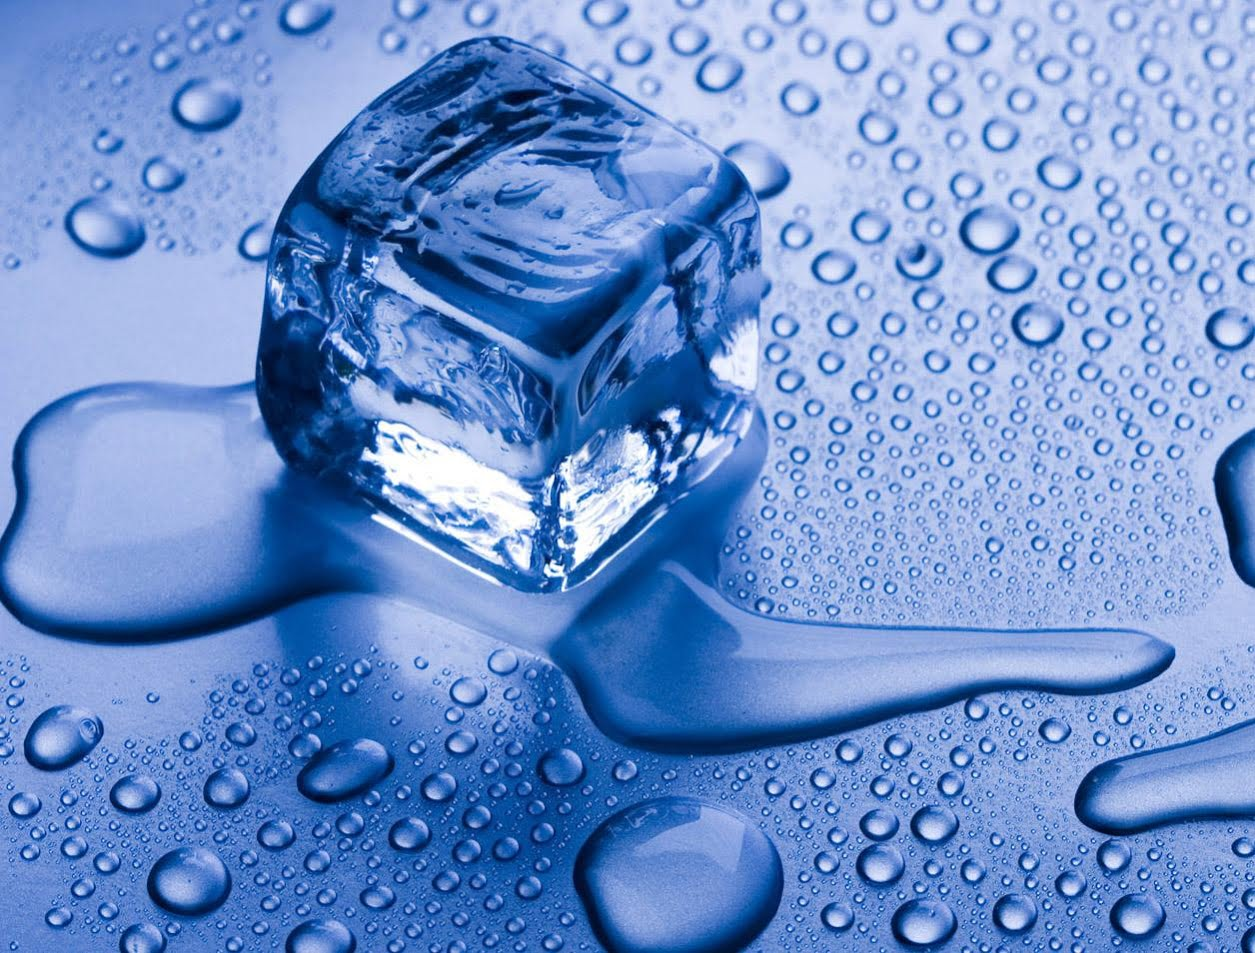 What makes ice melt faster?